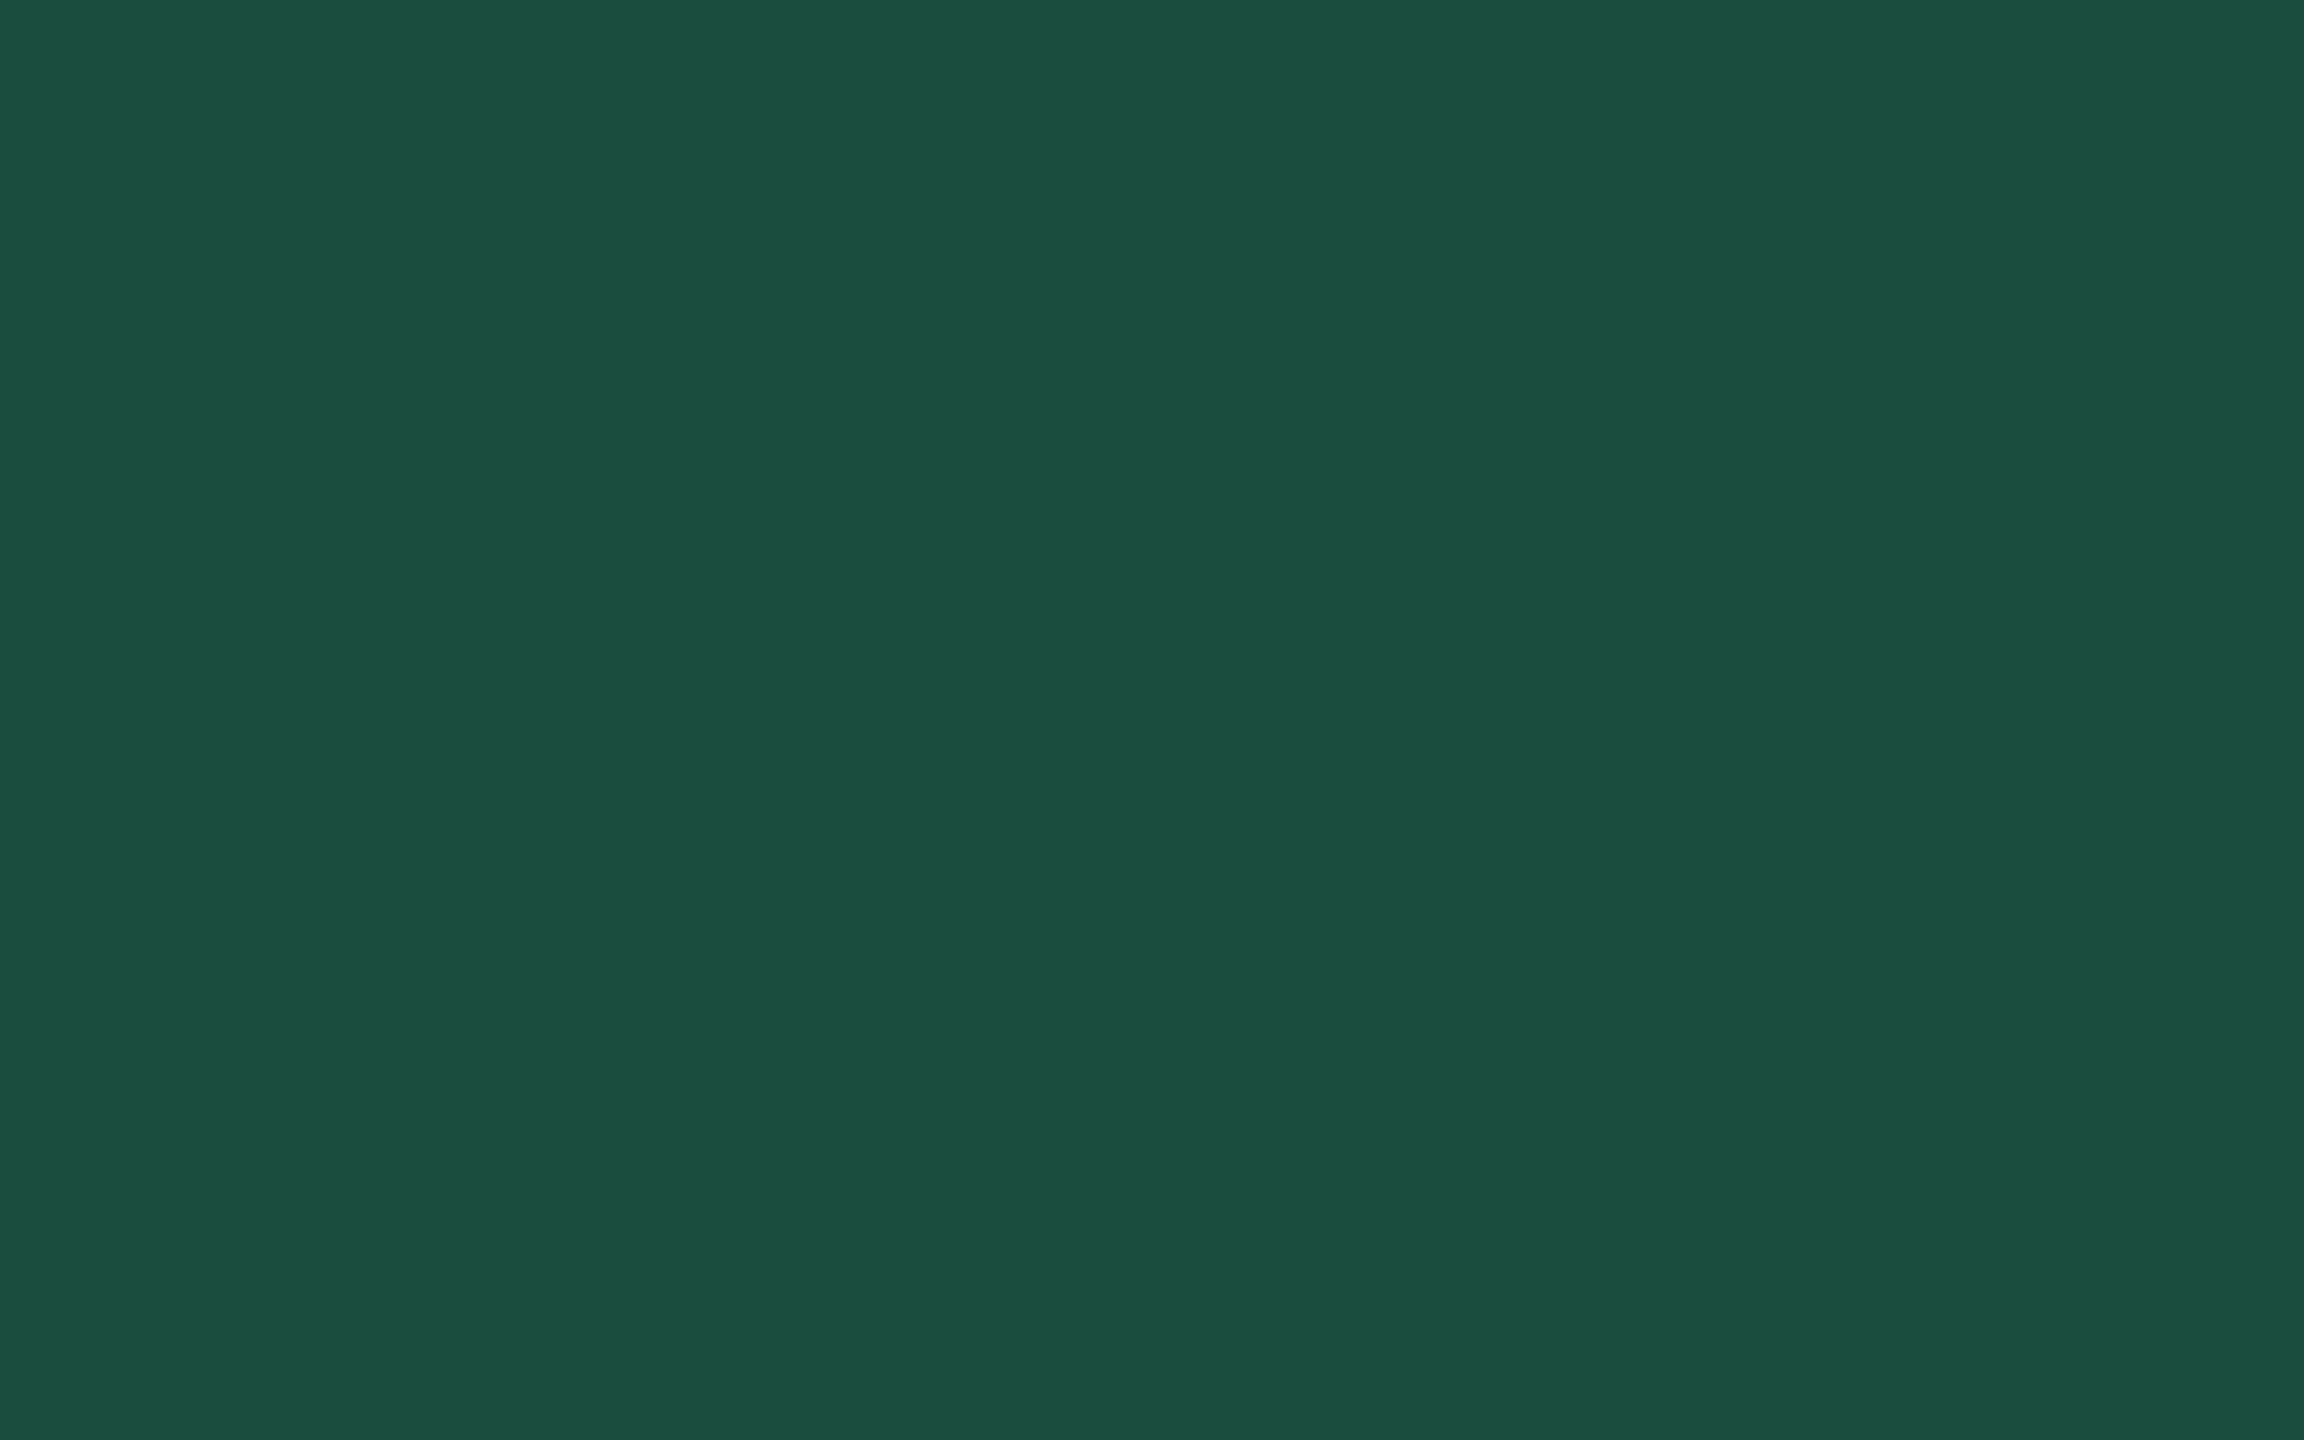 2304x1440 English Green Solid Color Background